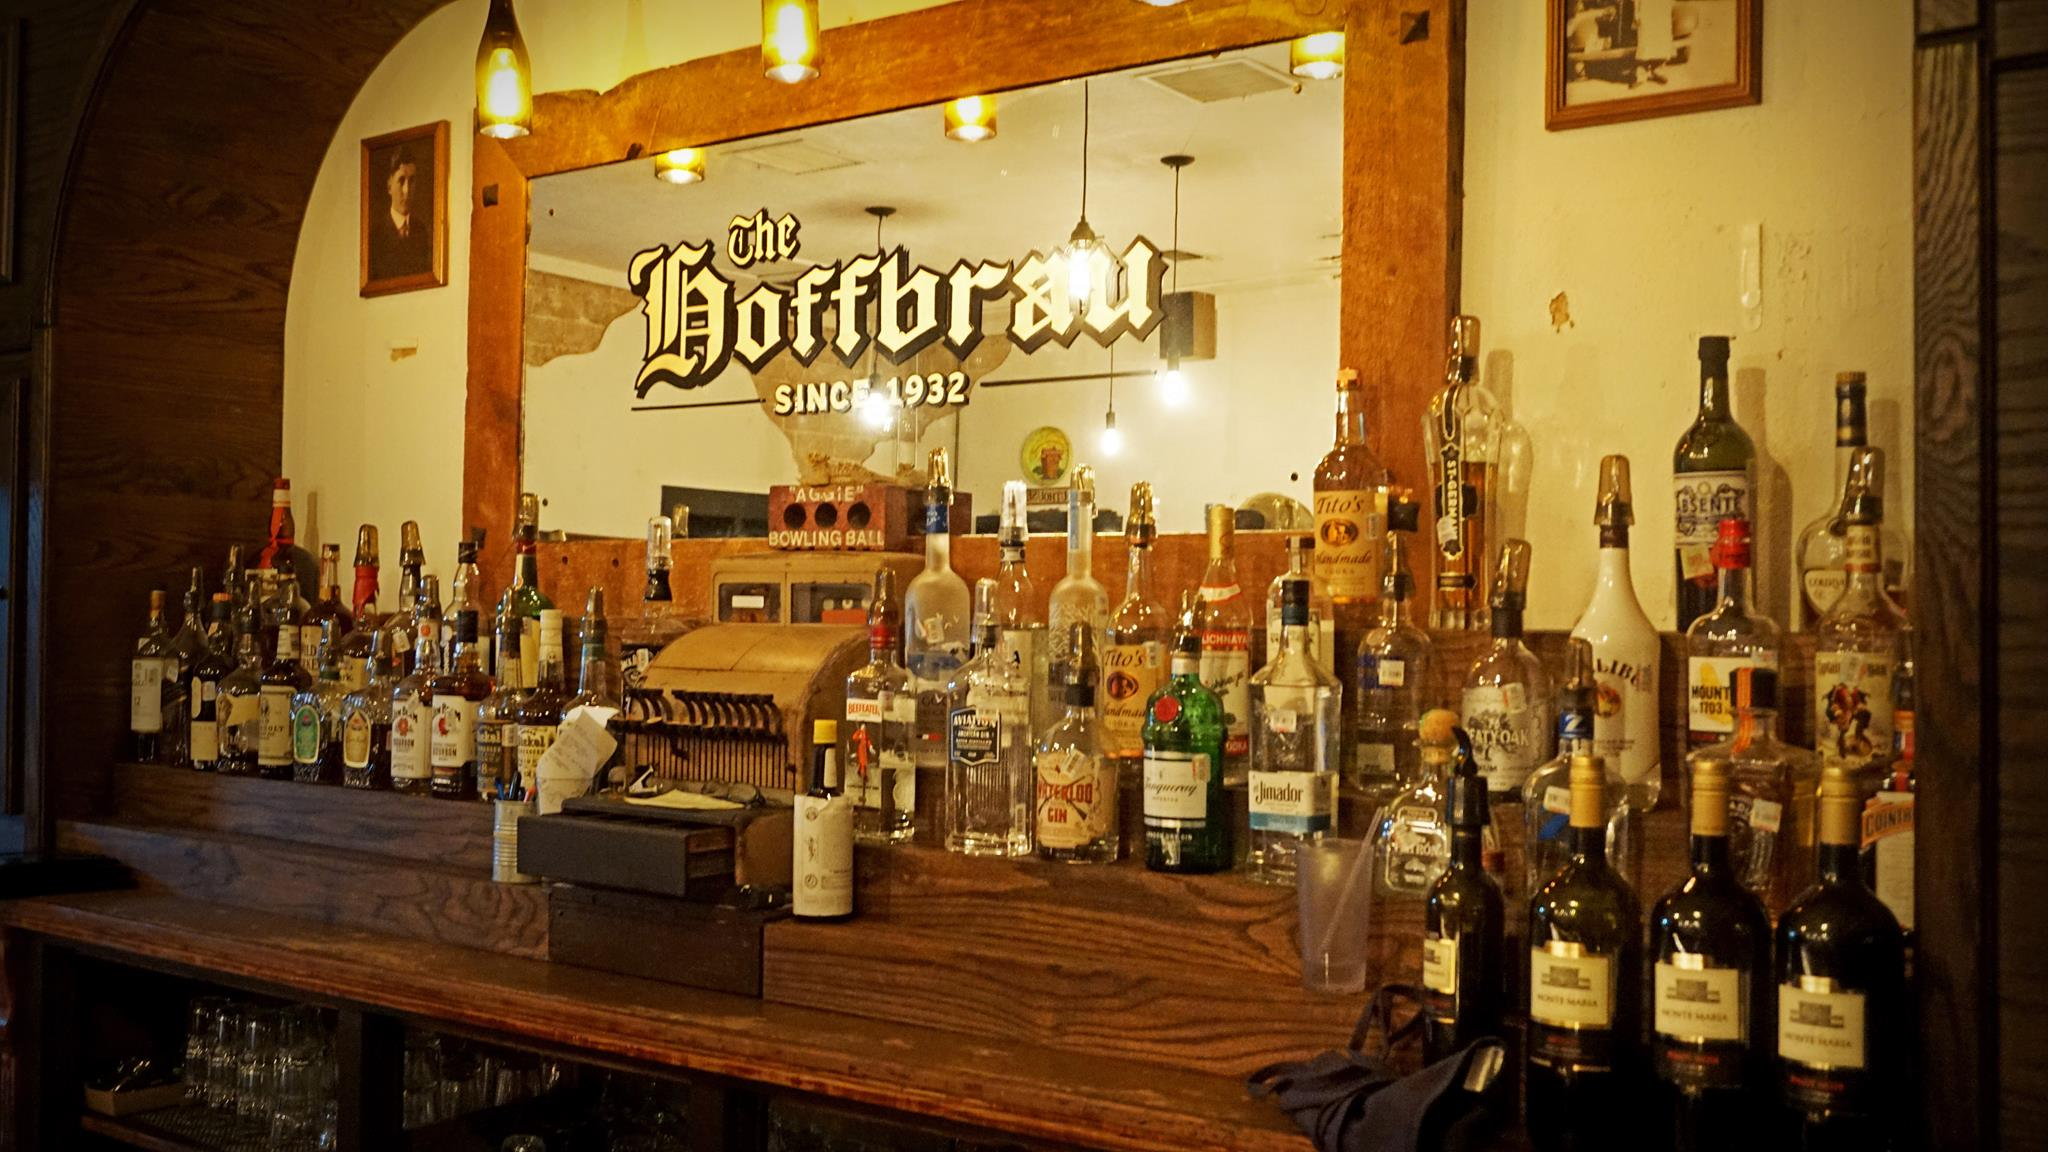 The Original Hoffbrau Steakhouse Vintage Bar